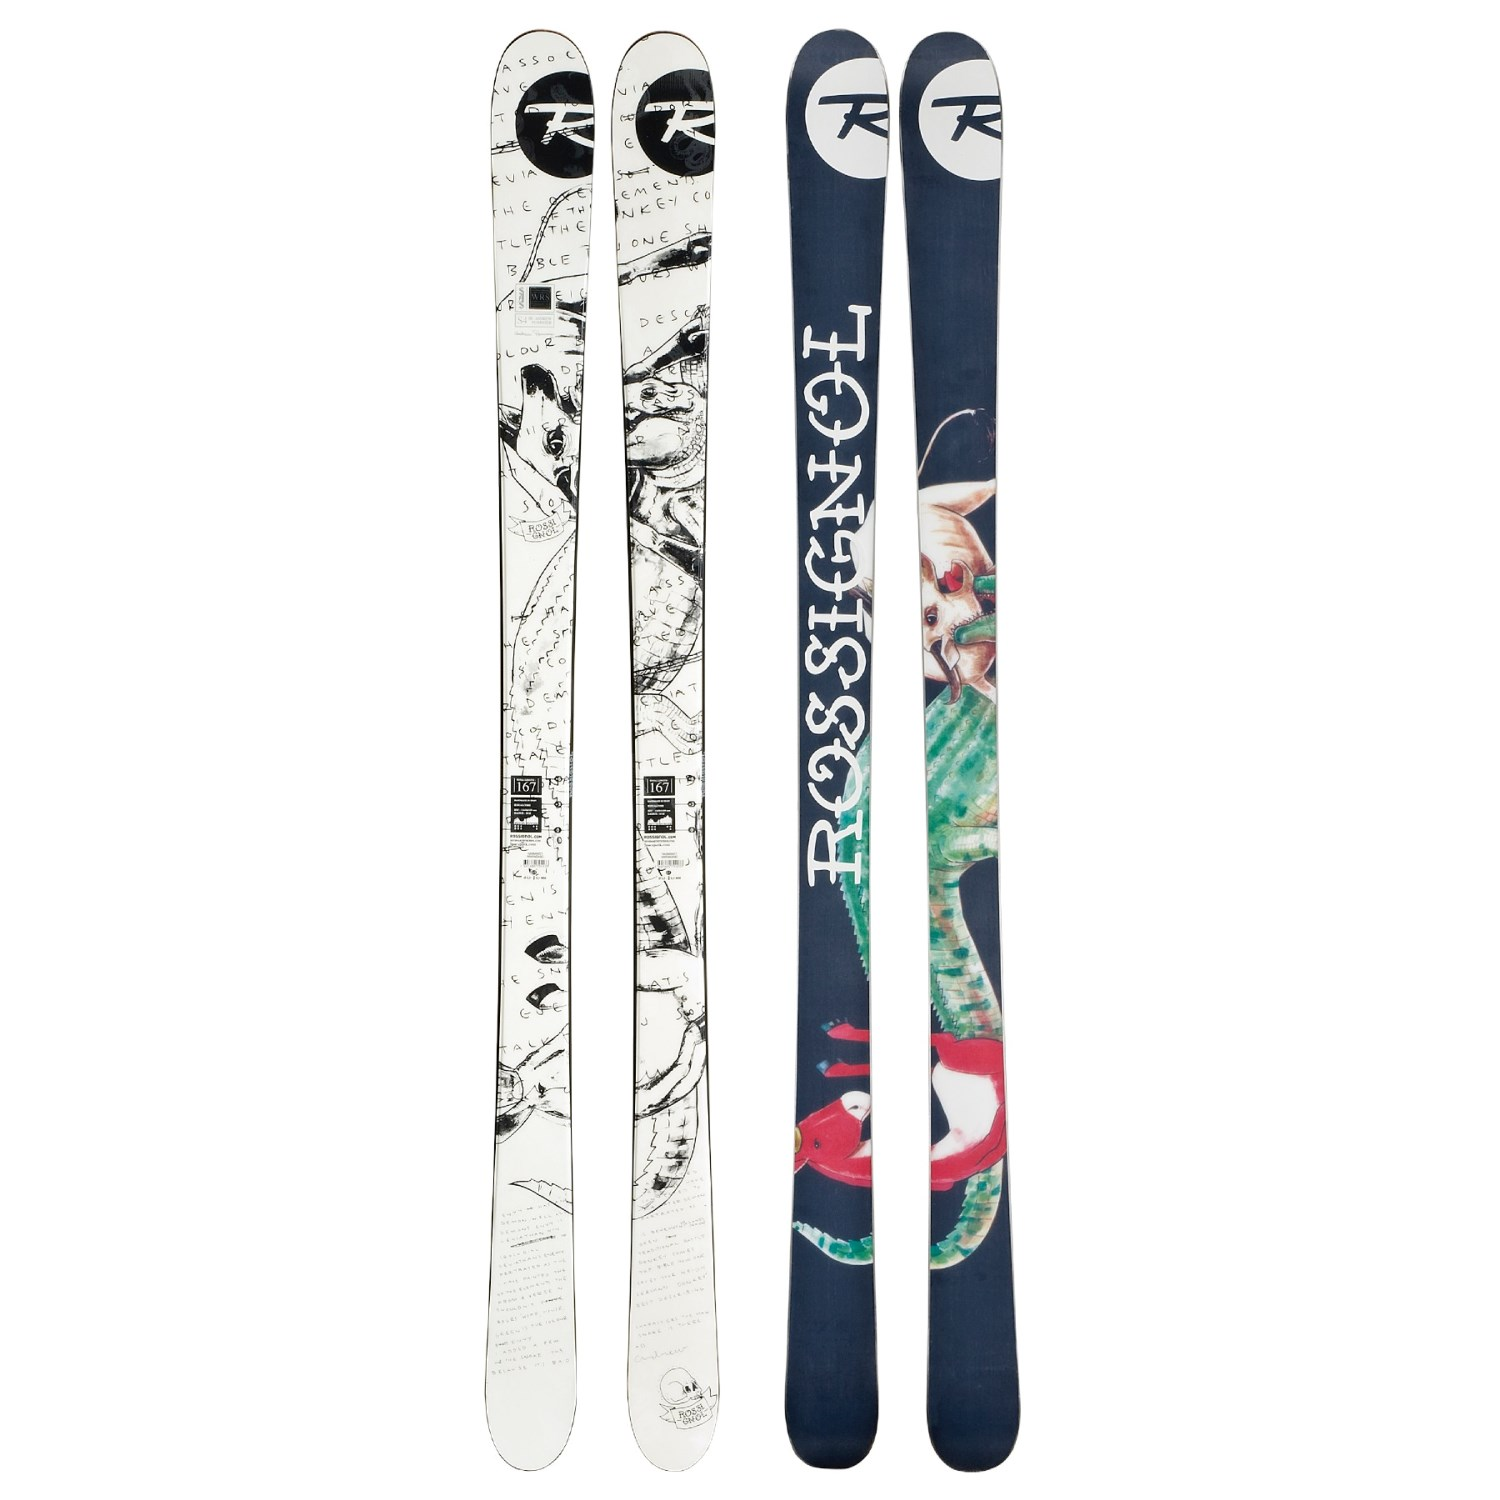 cheap rossignol s4 park skis freestyle twin tip. Black Bedroom Furniture Sets. Home Design Ideas